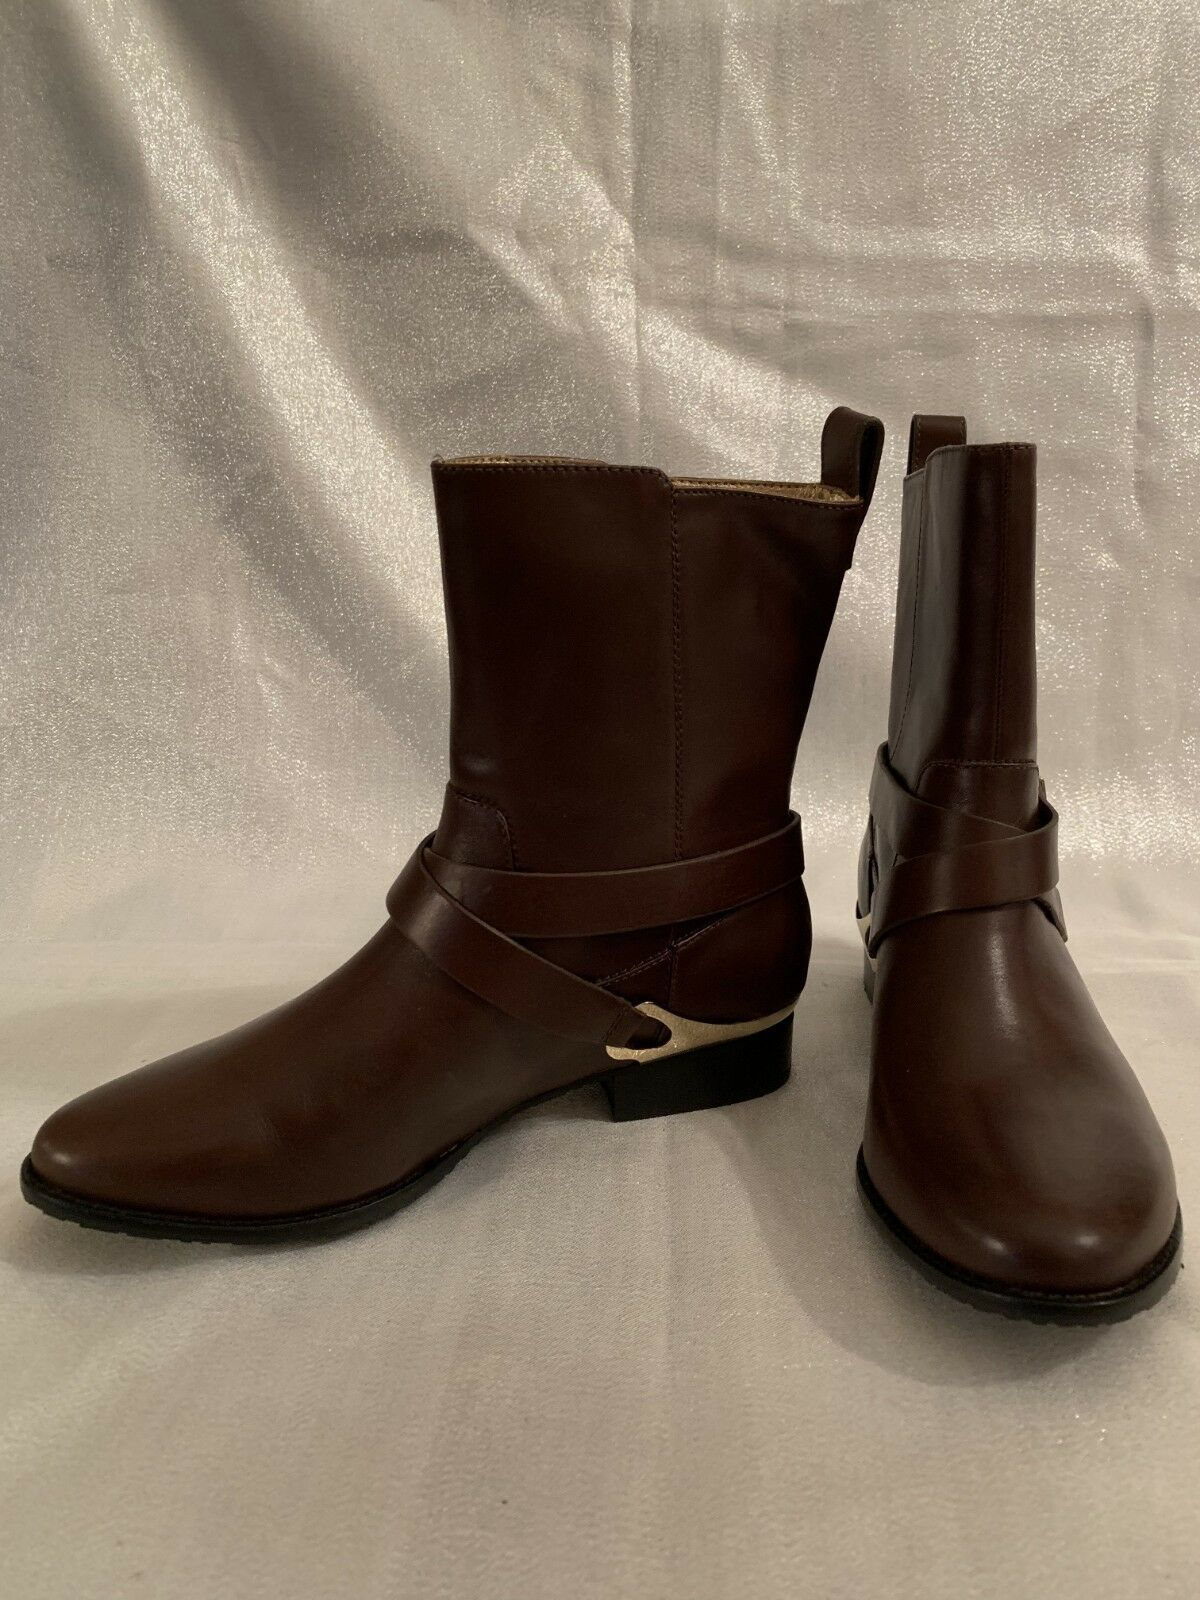 ELAINE TURNER WOMEN'S BROWN ANKLE BOOTS WITH METAL TRIM SIZE 6